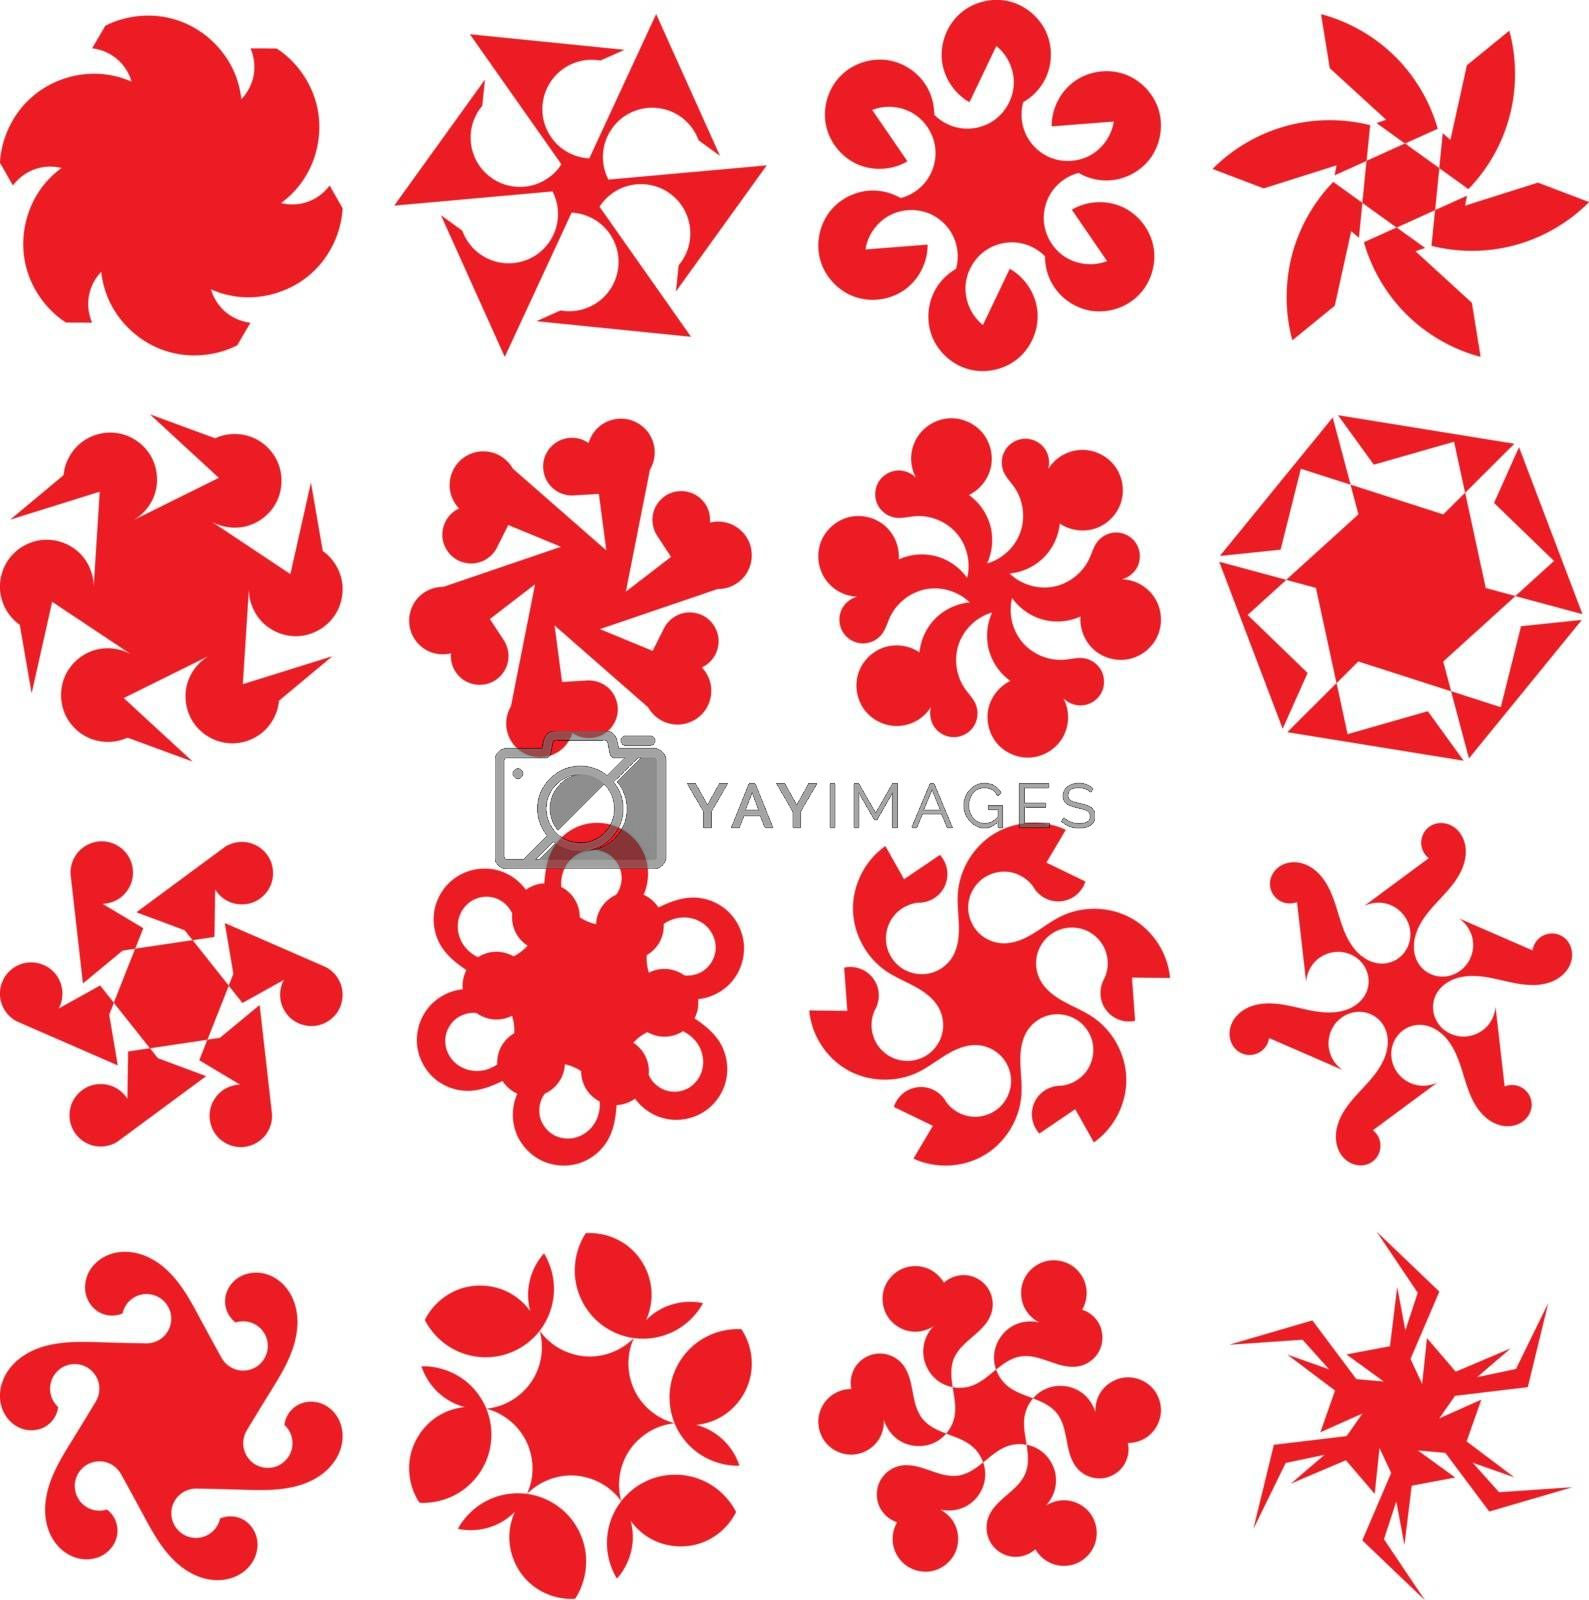 Set of abstract geometric red circular shapes. Symmetric center shapes. Ornament design elements. Vector illustration.